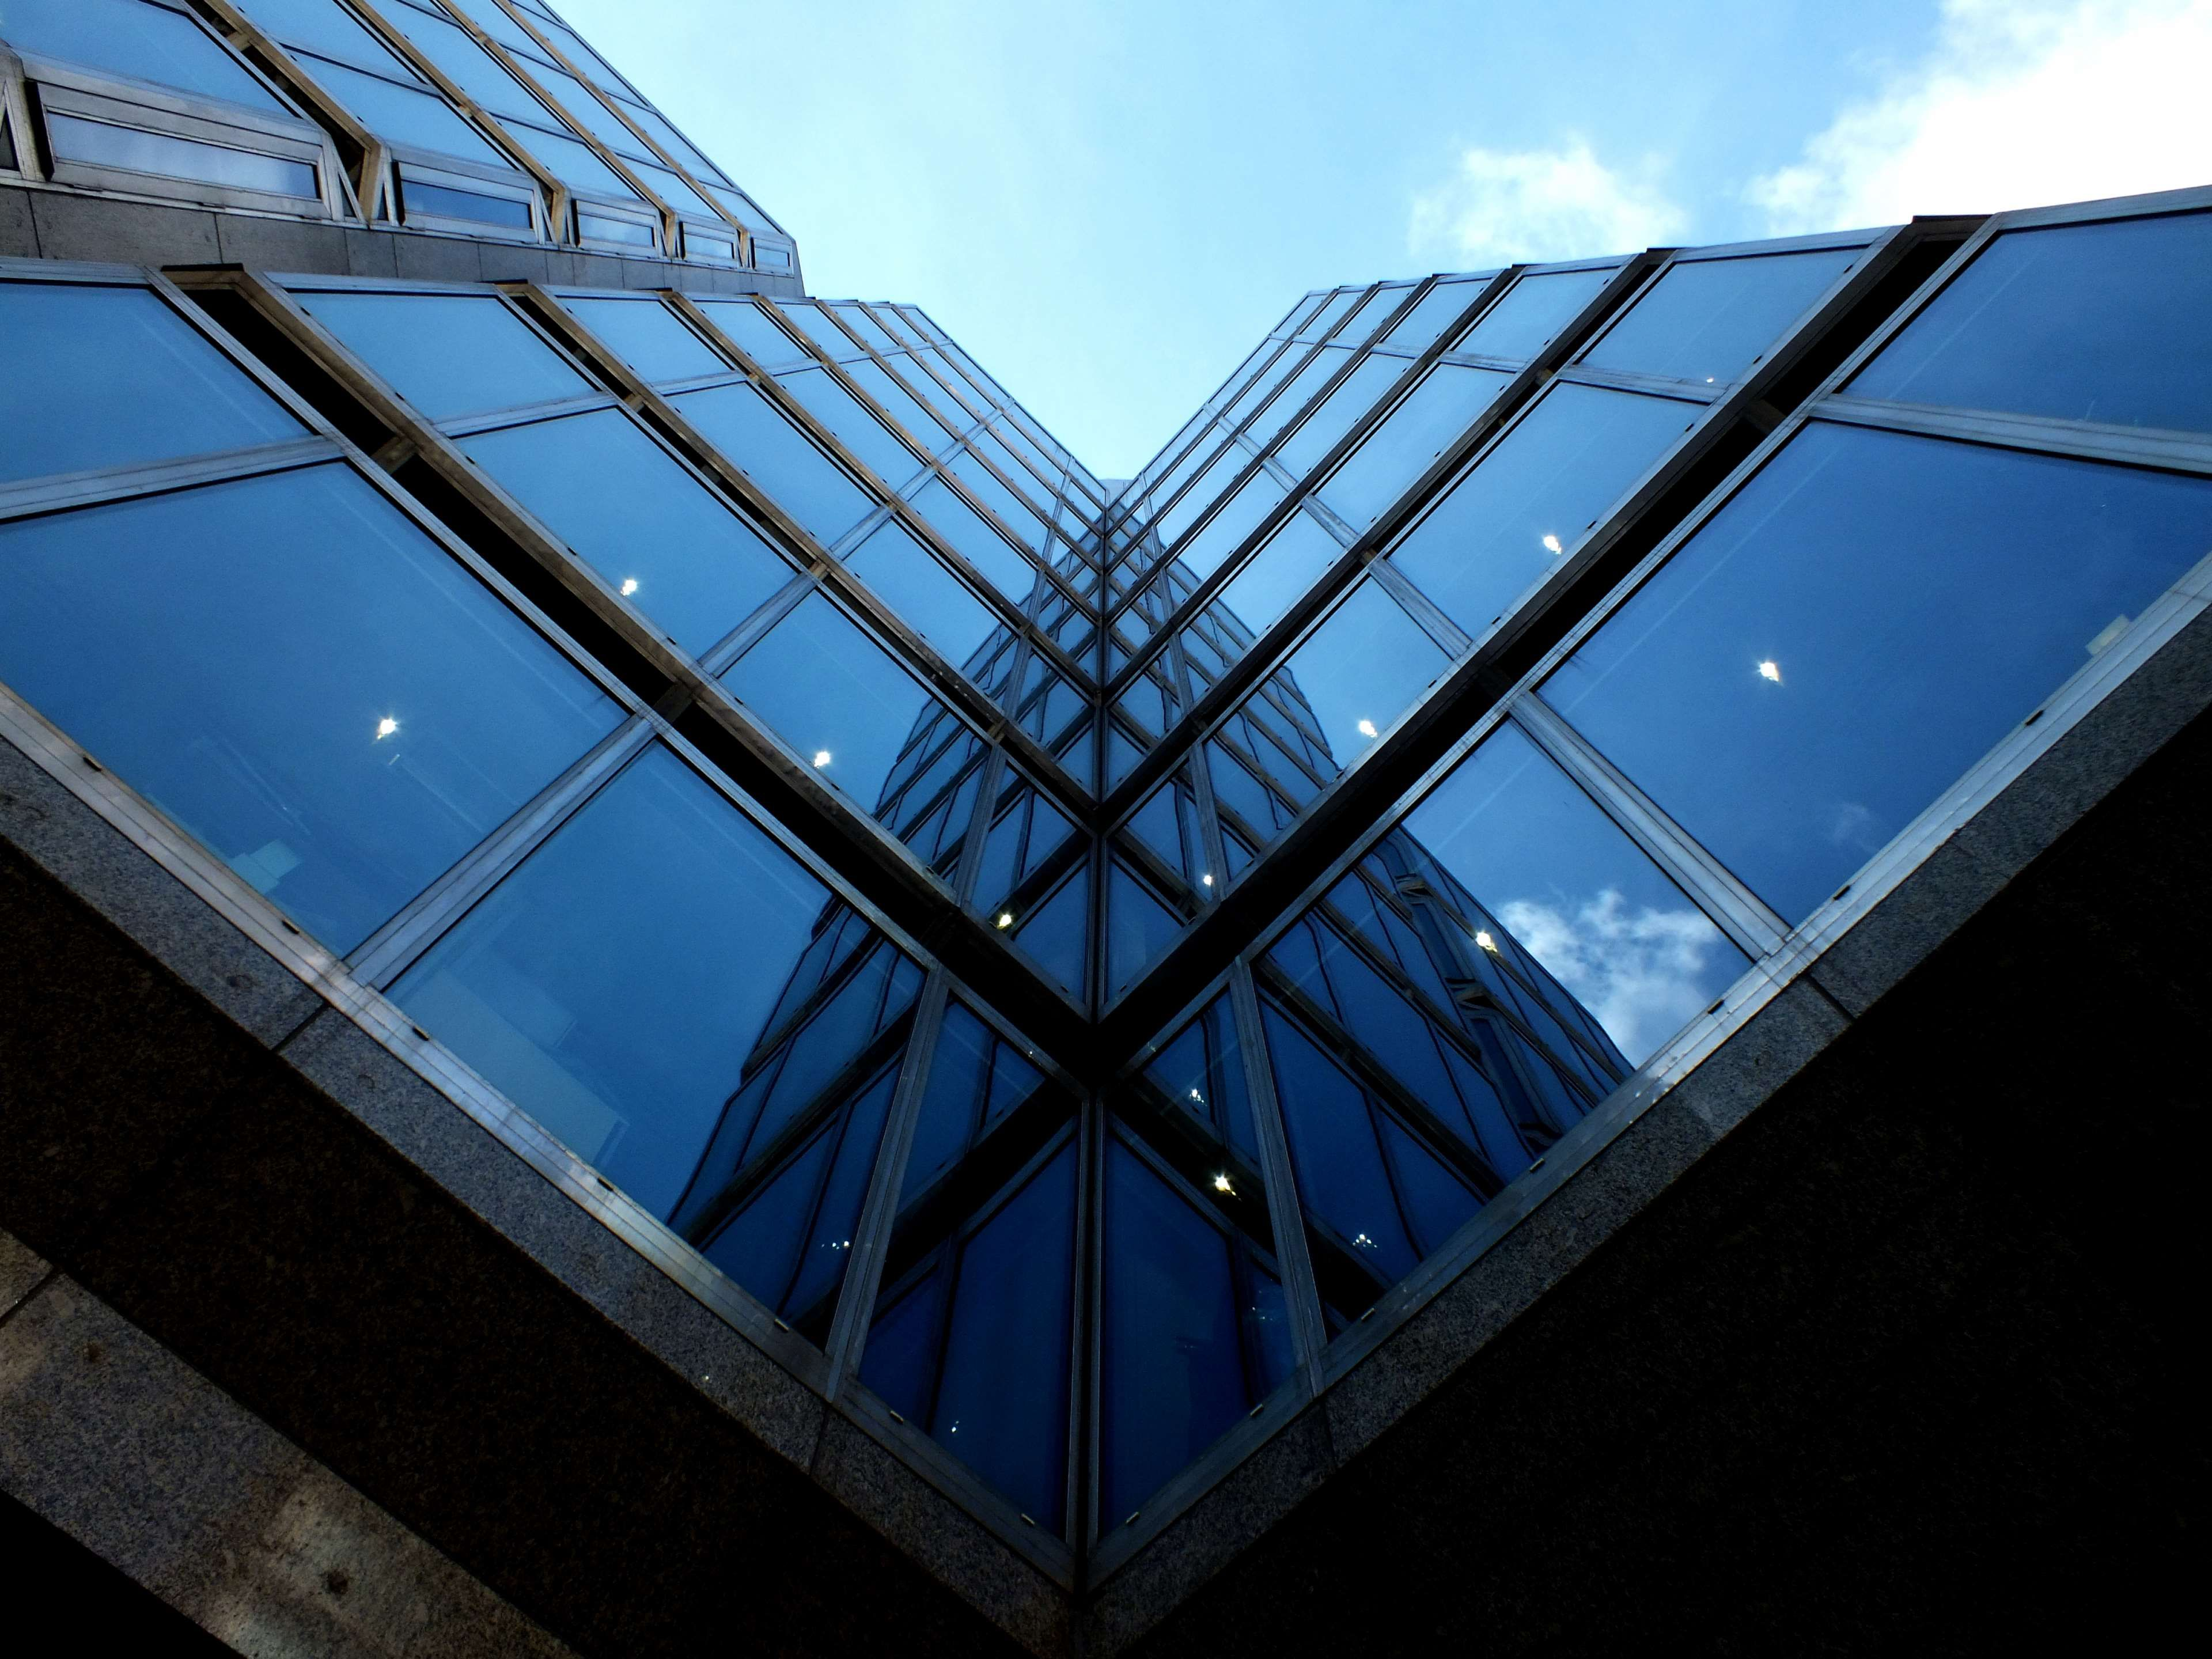 Building Glass House London Mirror Reflection Victoria Wall